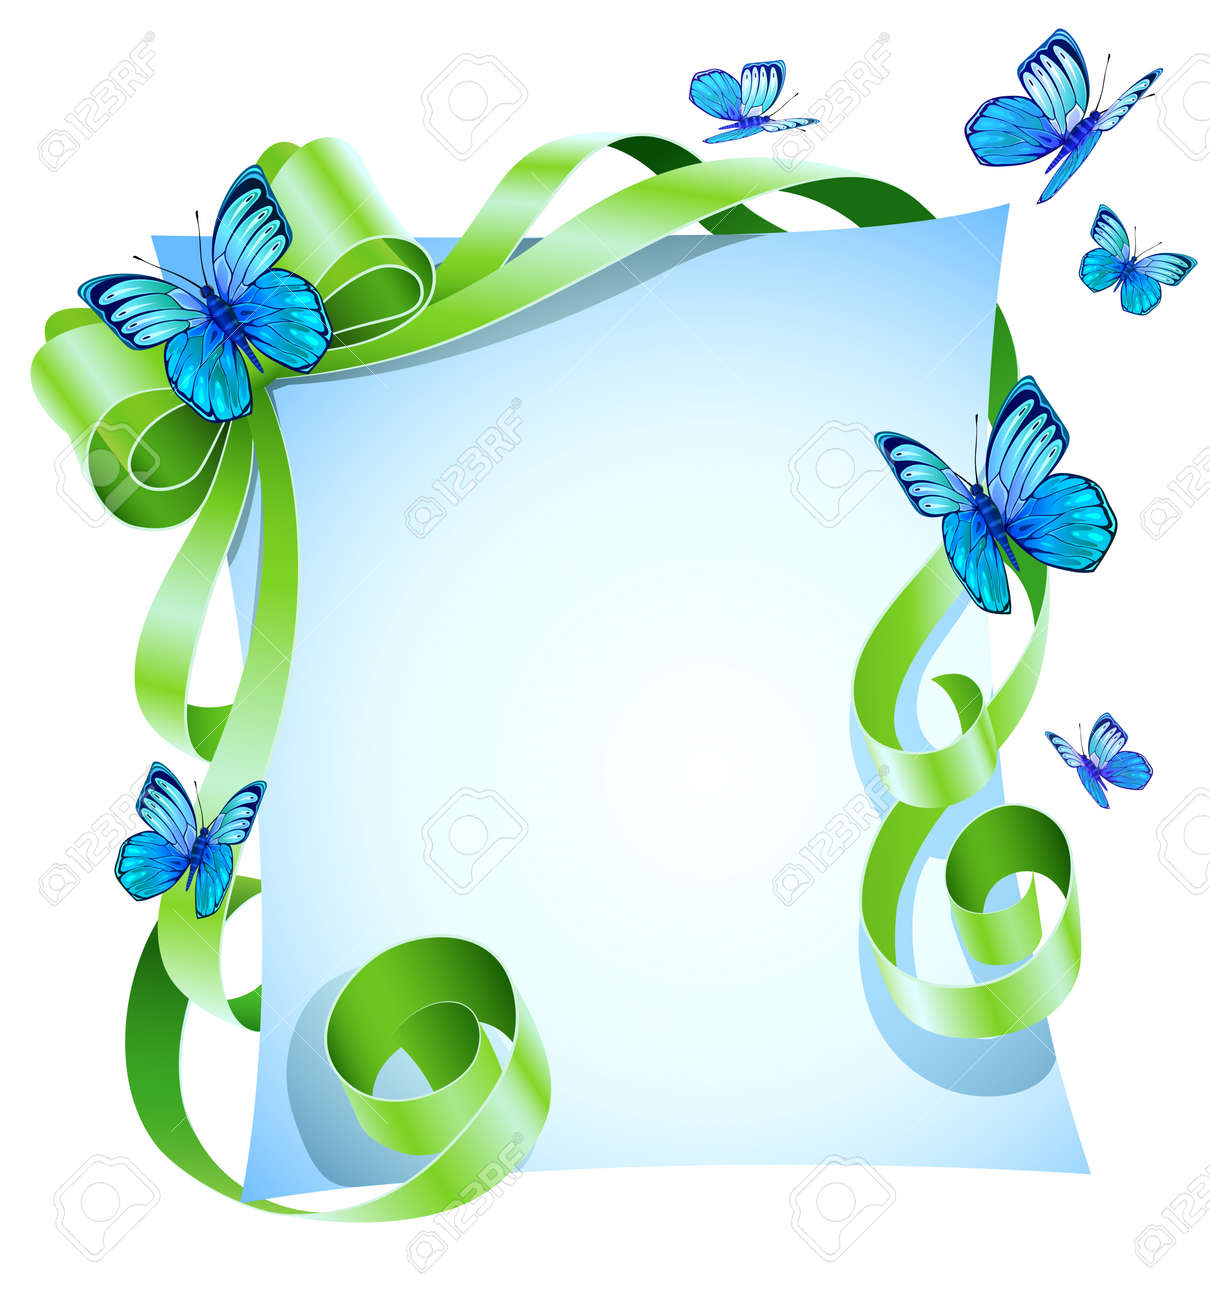 greeting card with green bow and blue butterfly Stock Vector - 8854814